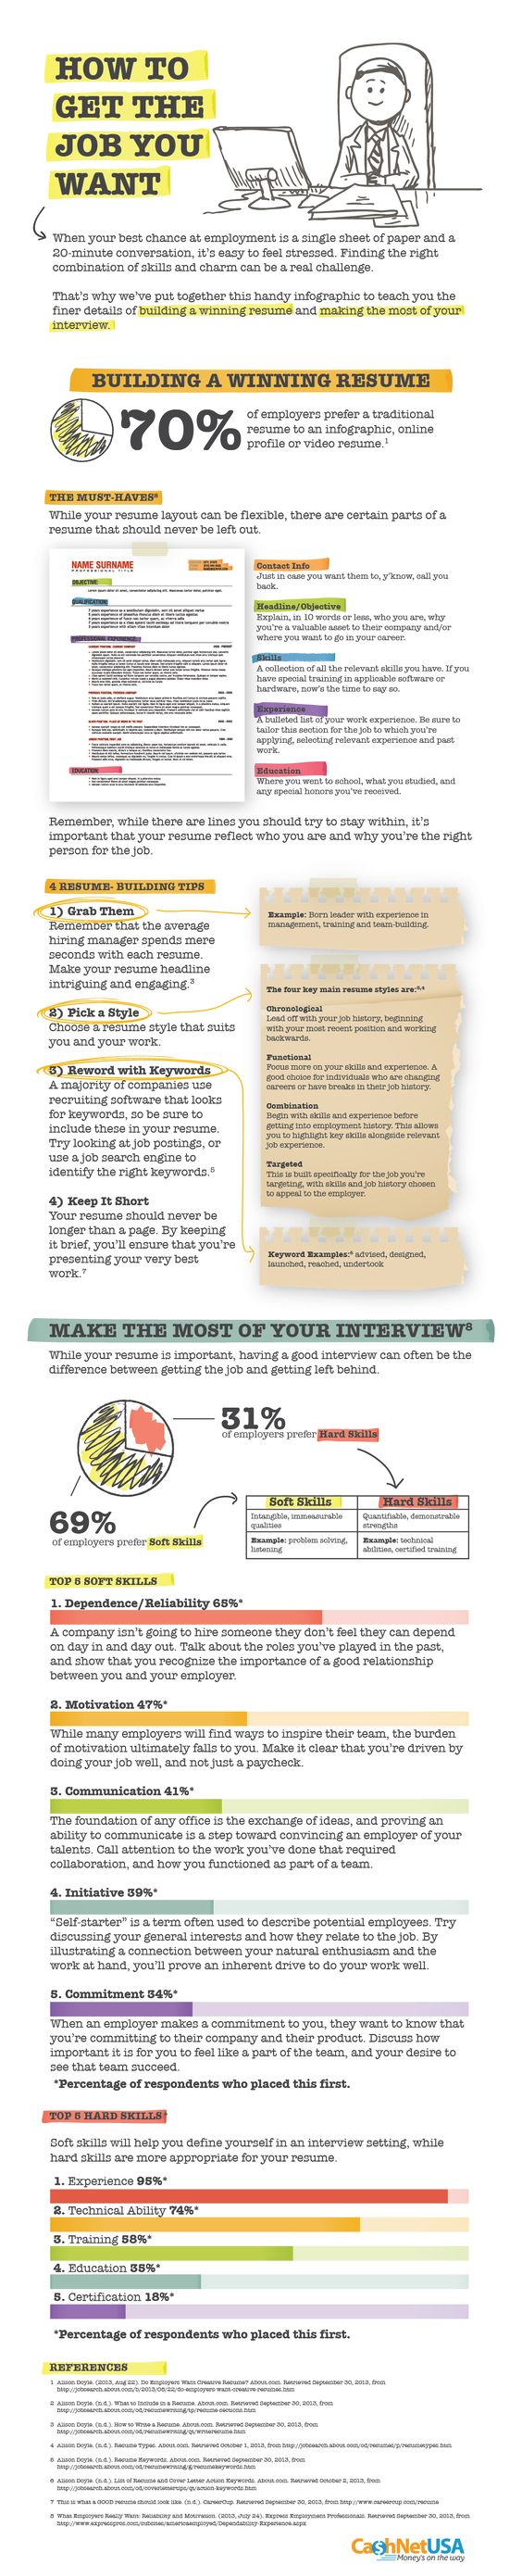 how to get the job you want infographic on this website is for is your first and best source for all of the information you re looking for from general topics to more of what you would expect